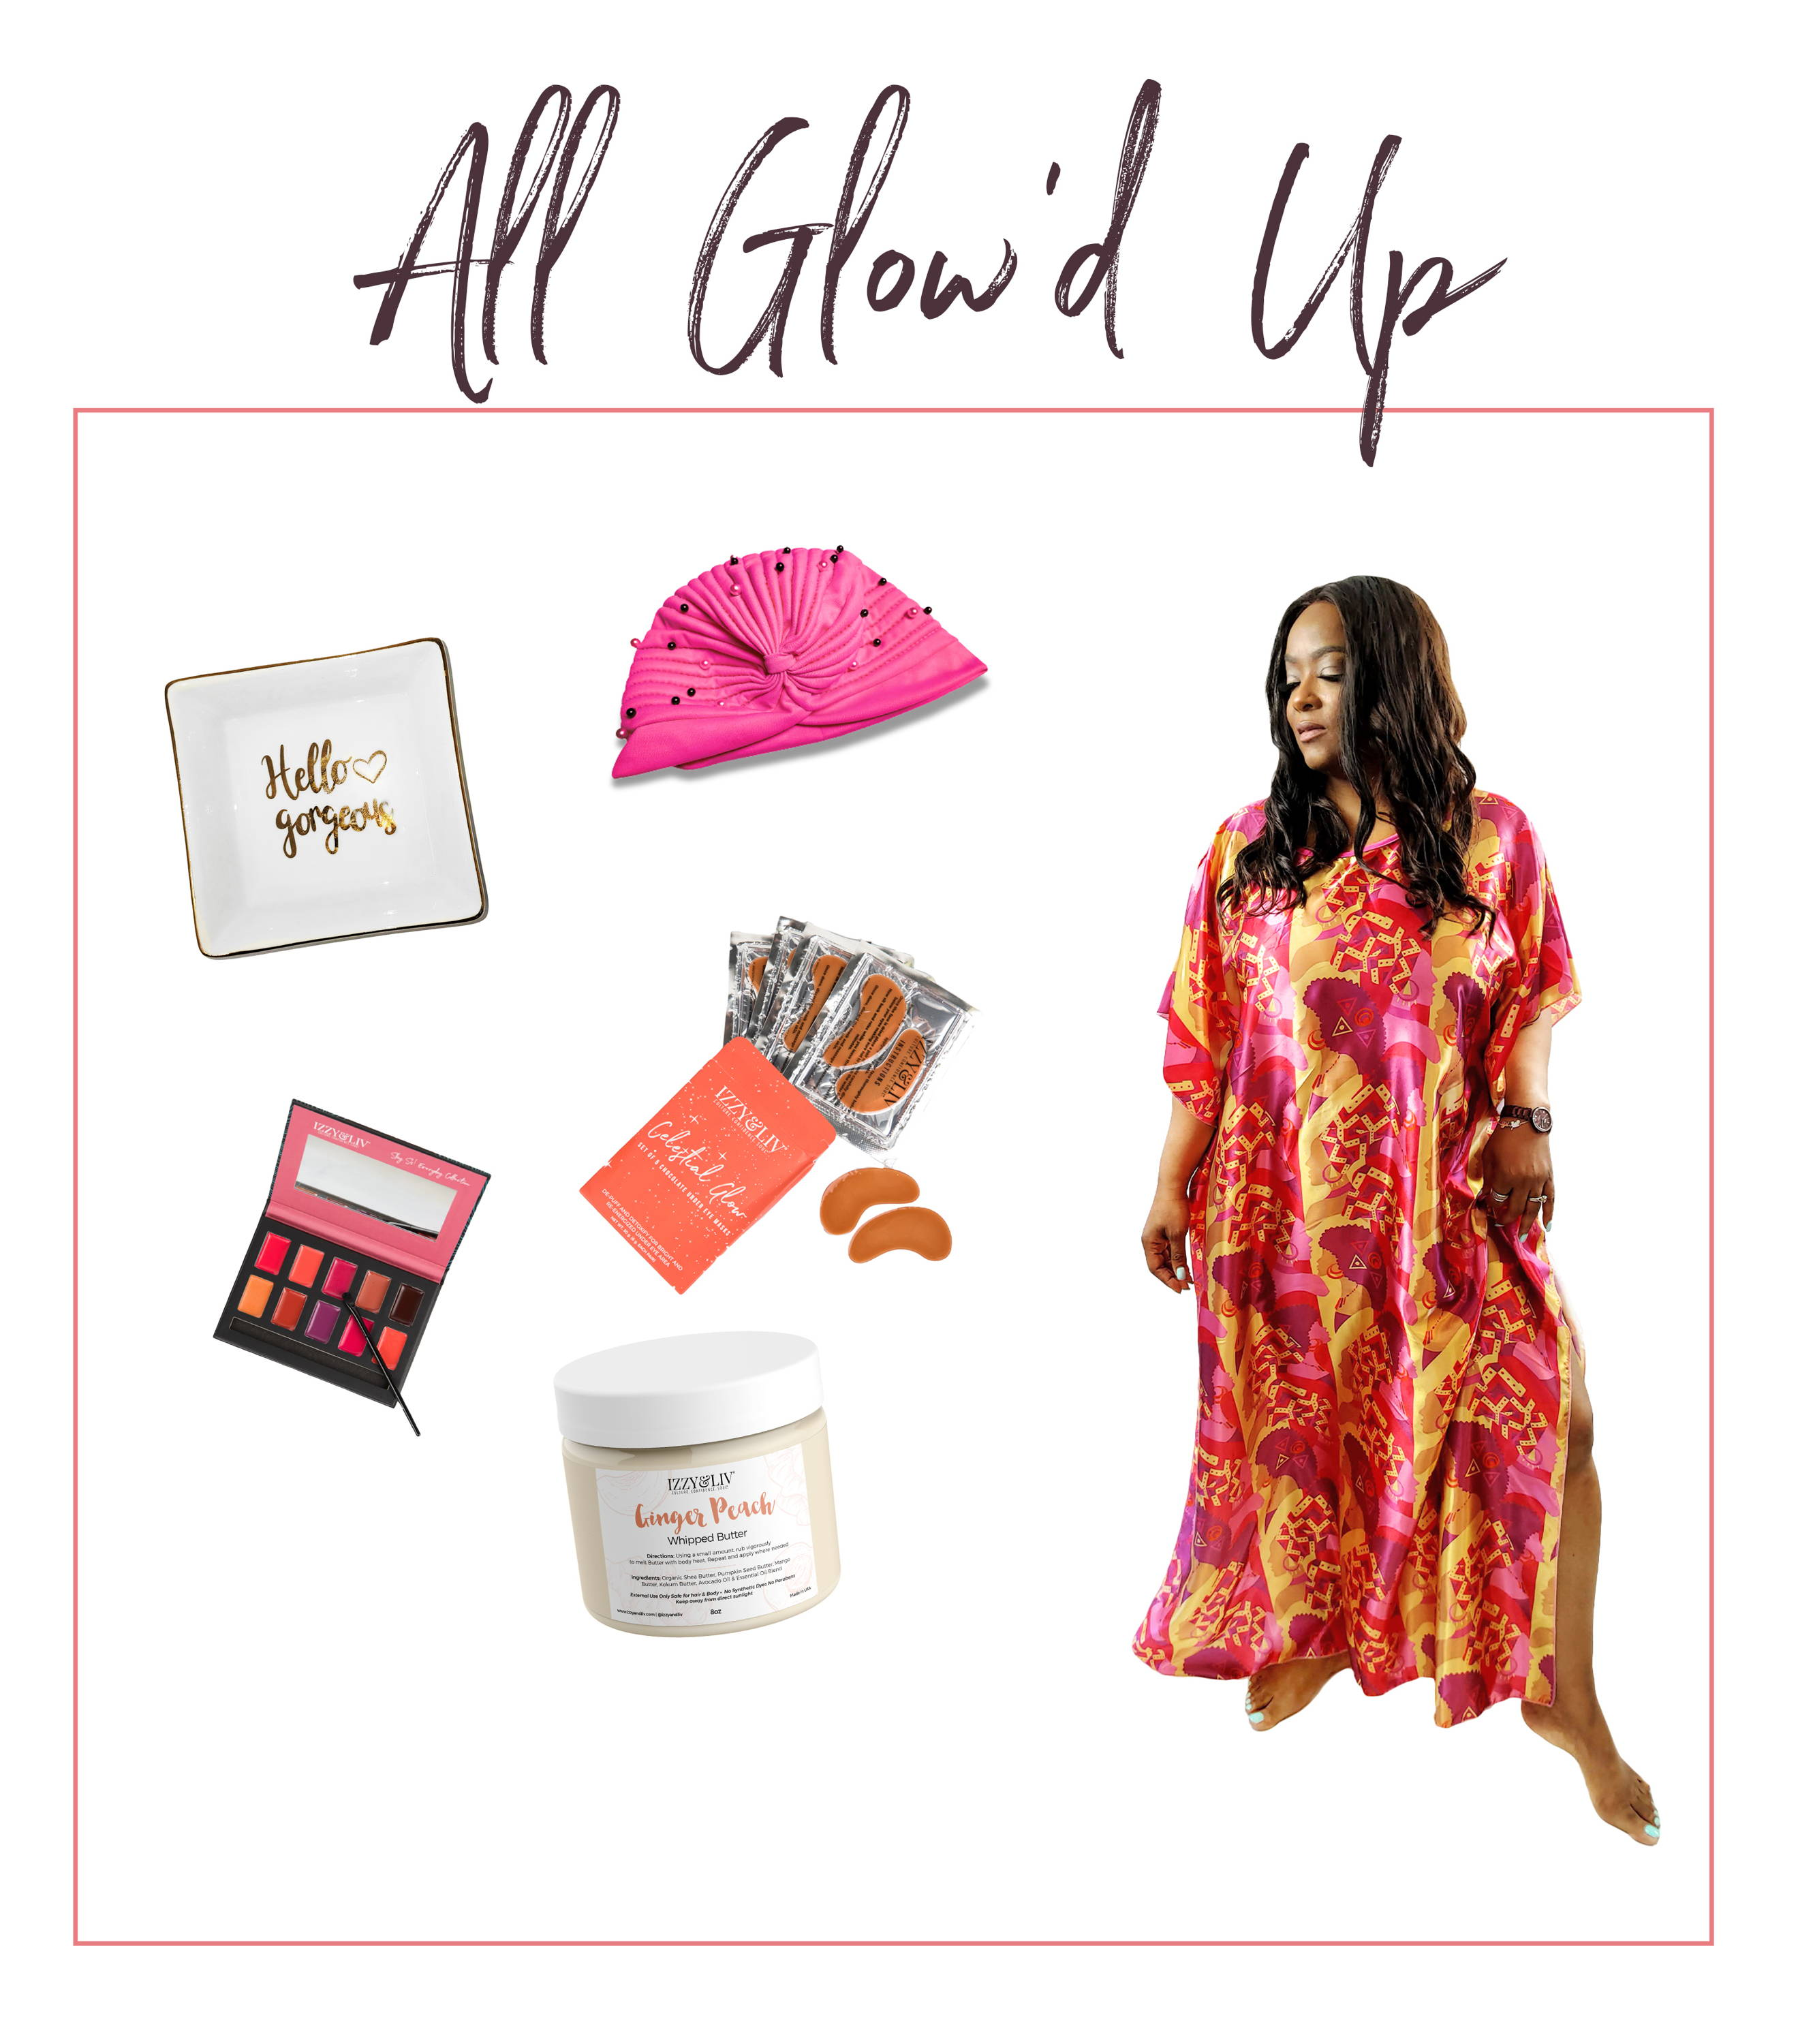 All Glow'd Up Mother's Day Bundle Image